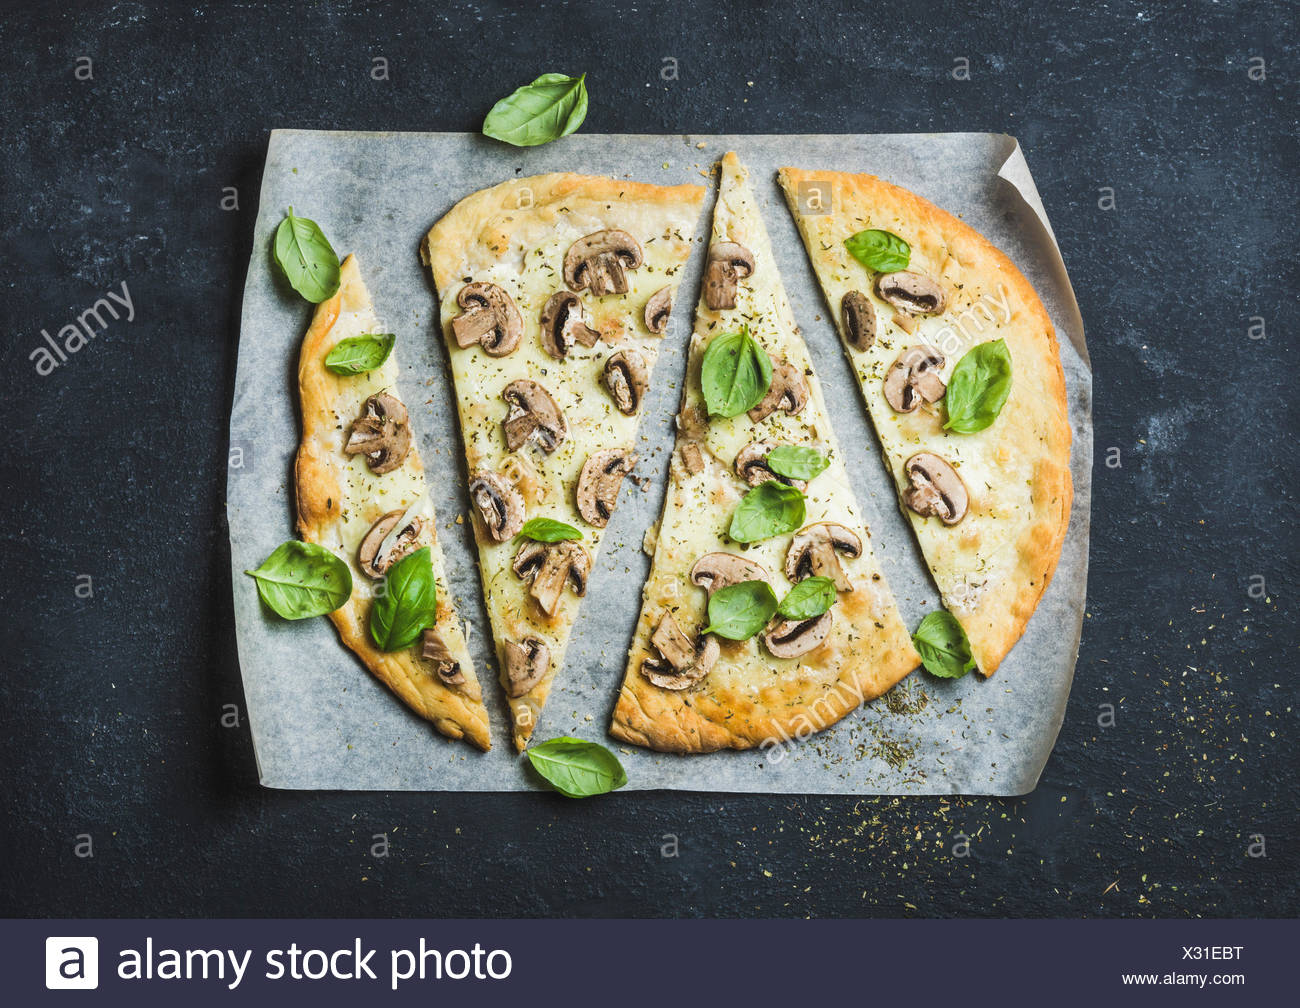 Homemade mushroom pizza with basil cut in slices on baking paper over black stone background, top view, horizontal composition - Stock Image